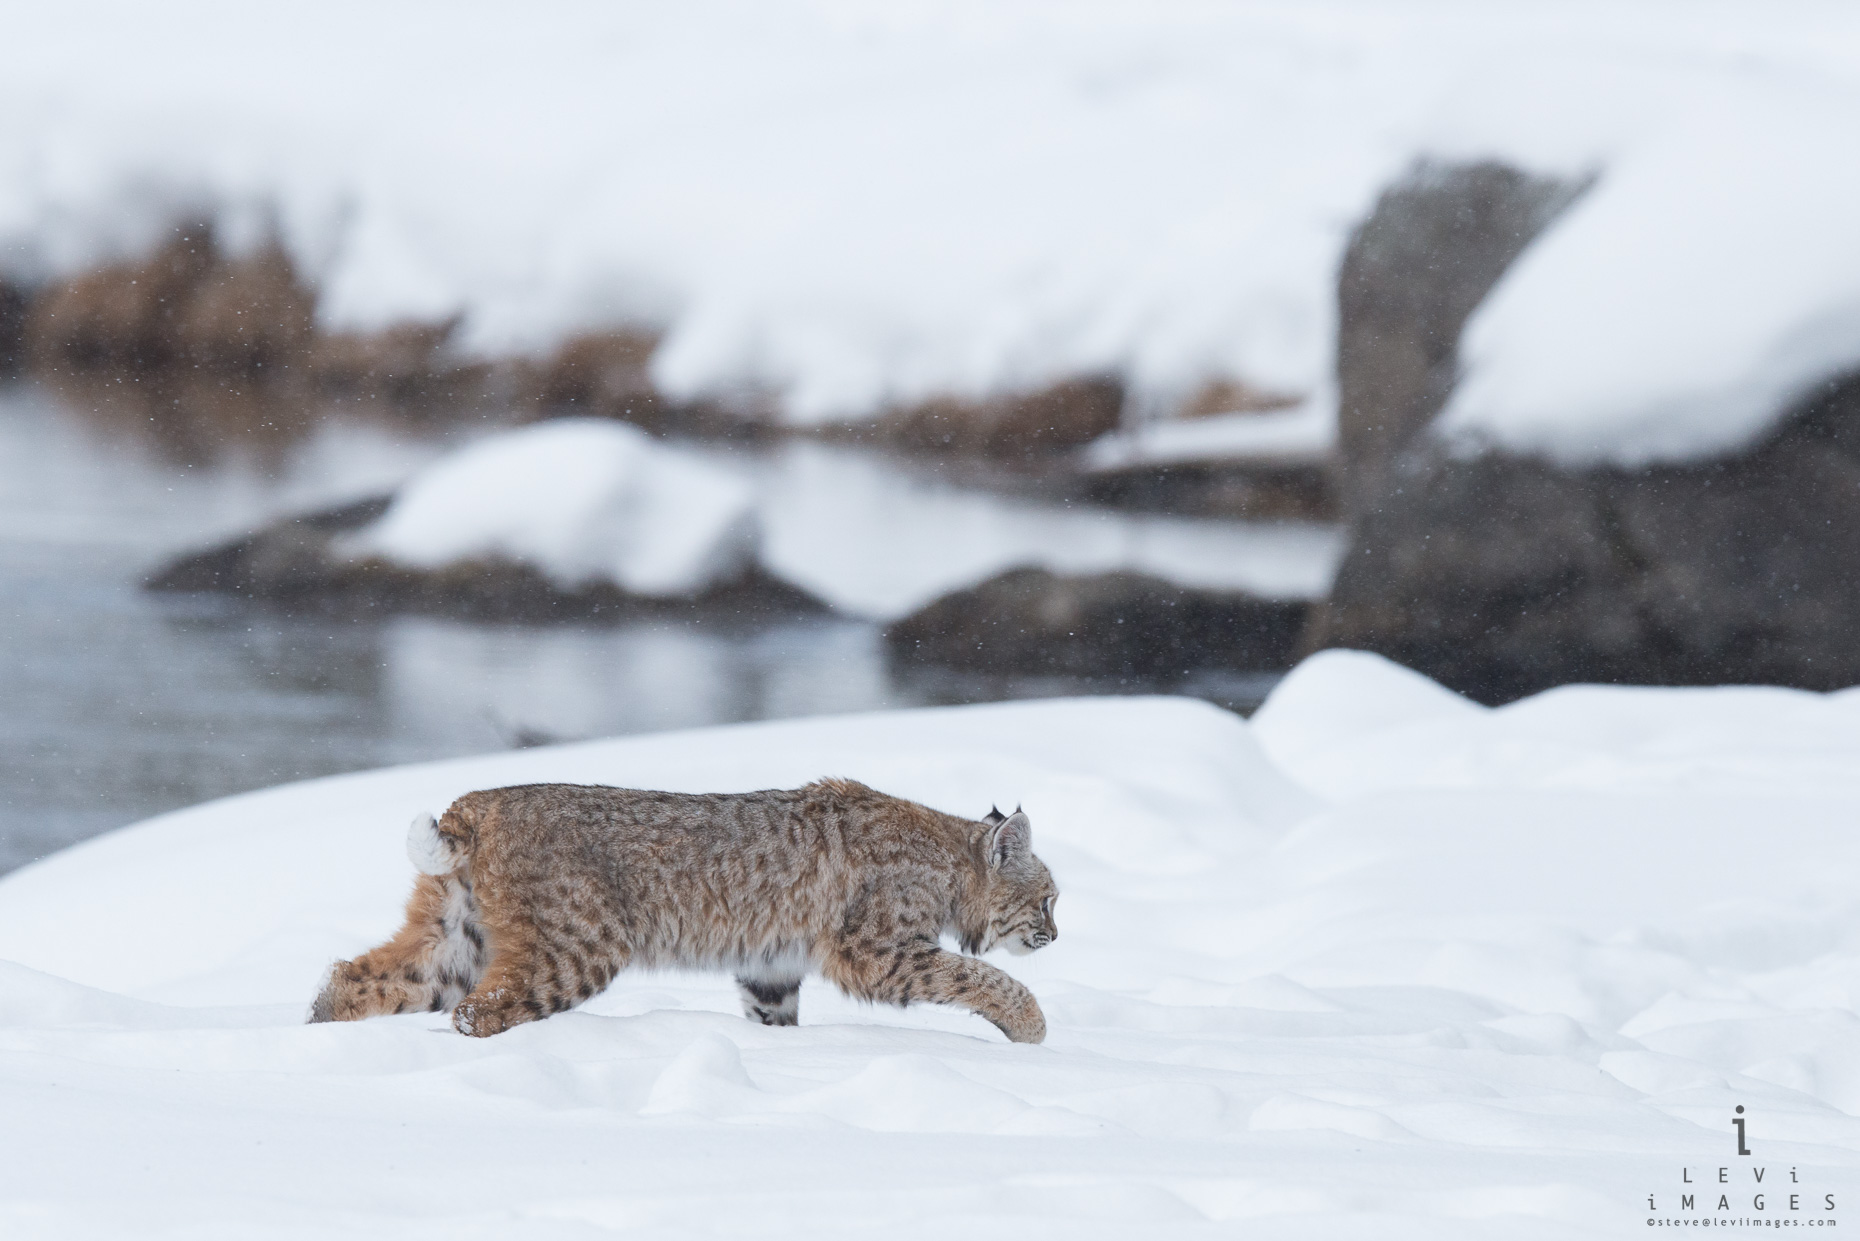 Bobcat (Lynx rufus) on the prowl in snow. Yellowstone National Park, Wyoming